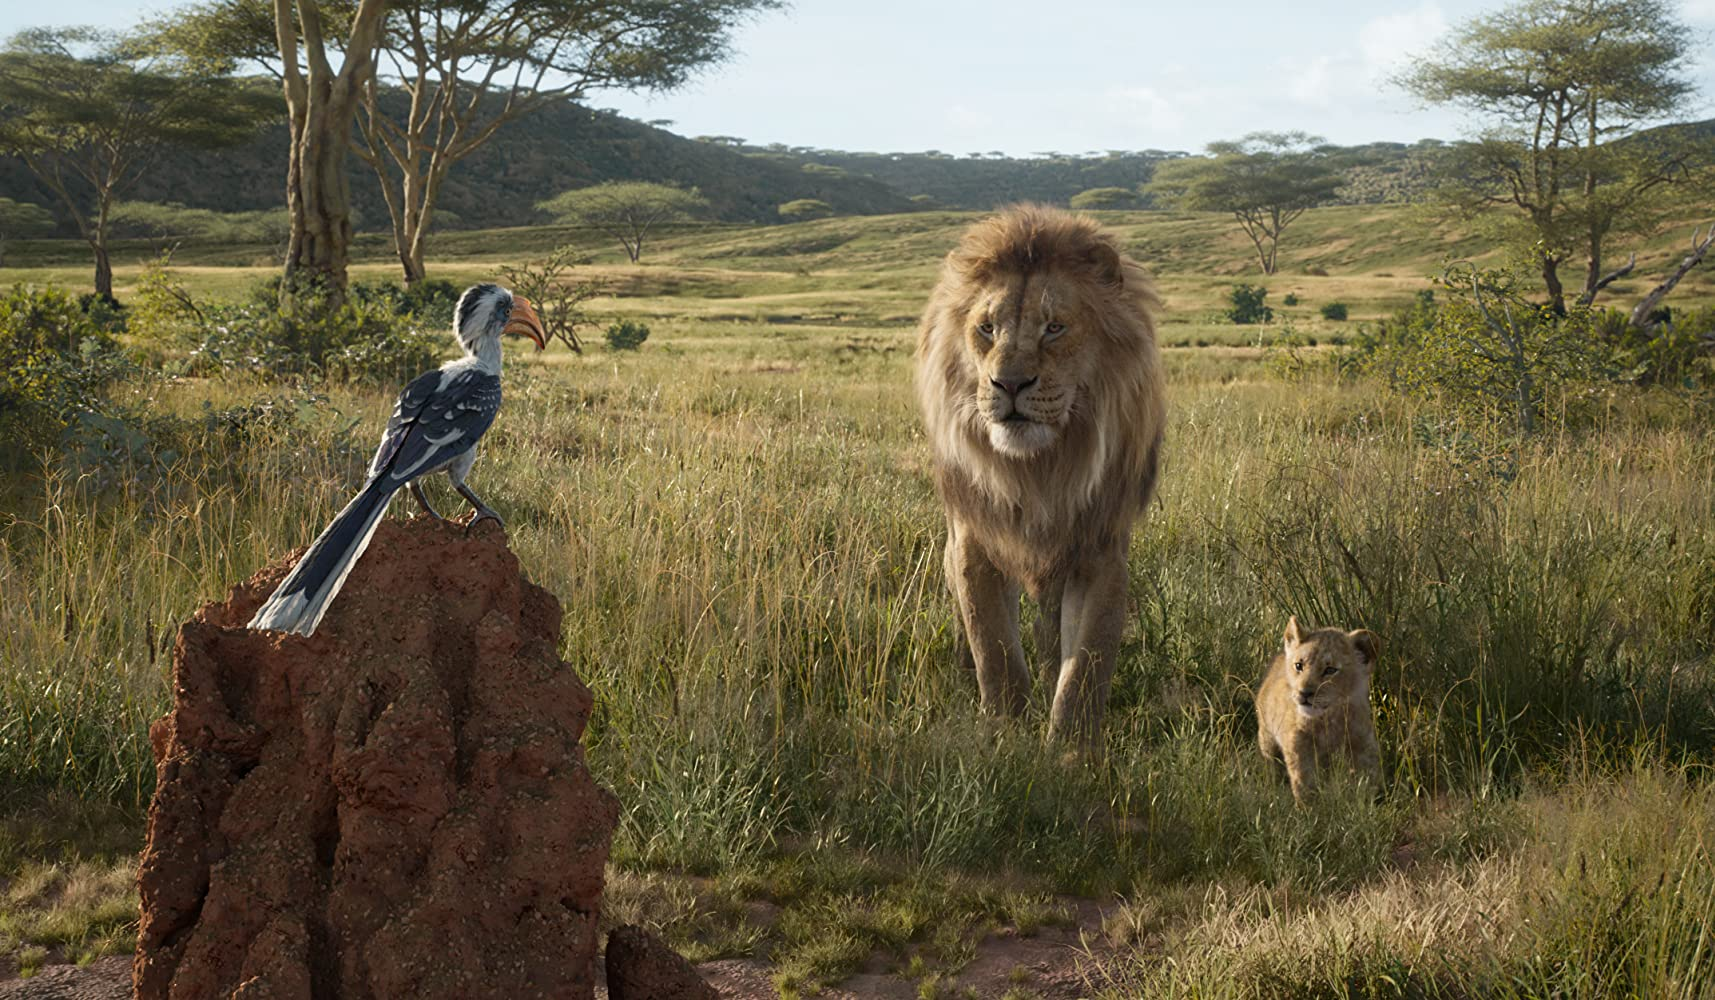 James Earl Jones, John Oliver, and JD McCrary in The Lion King (2019)